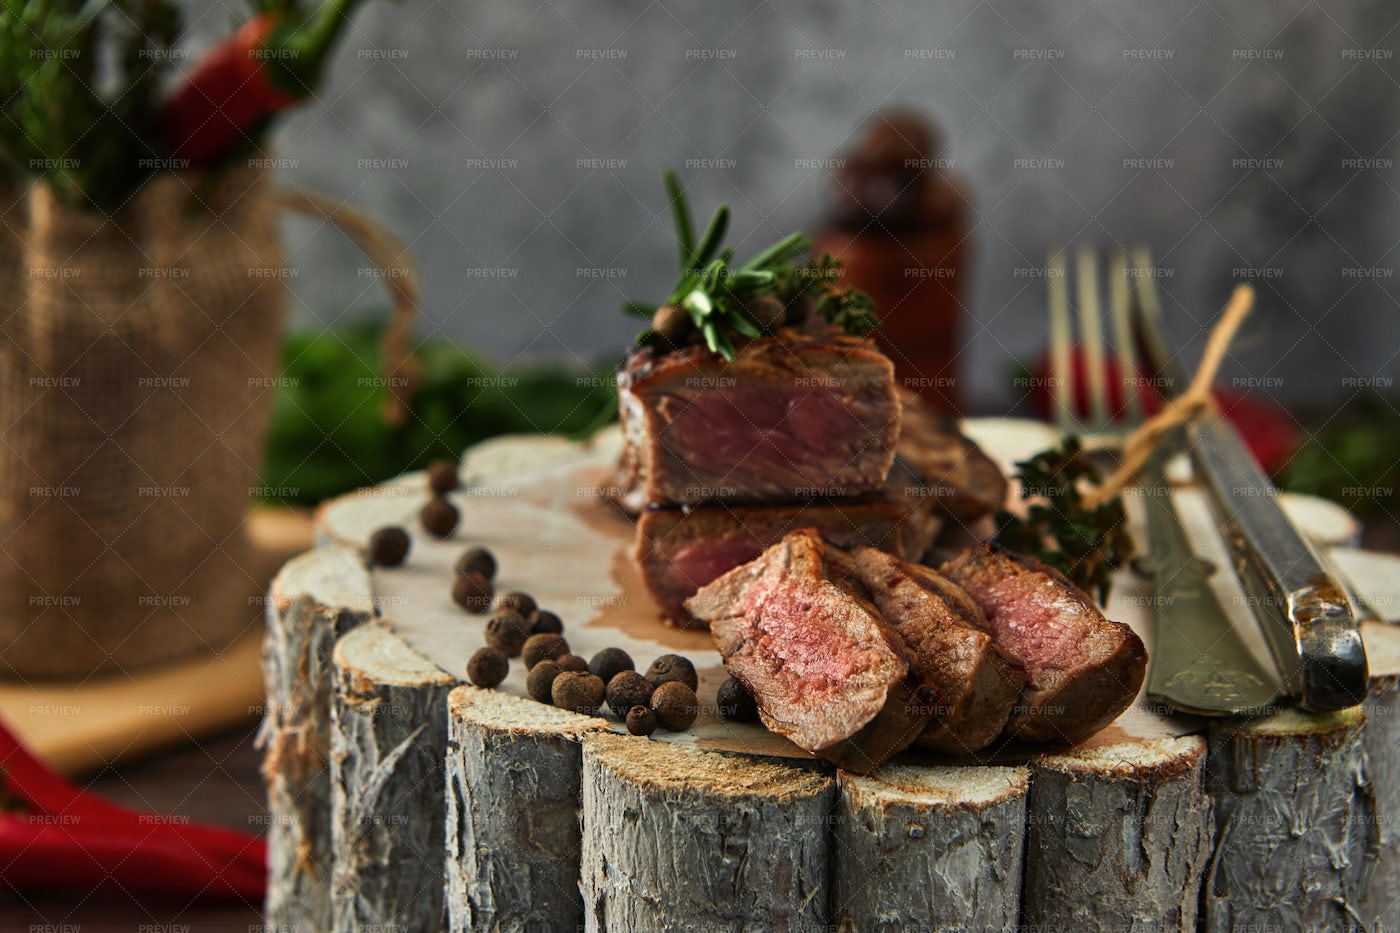 Beef Steak On Wood: Stock Photos